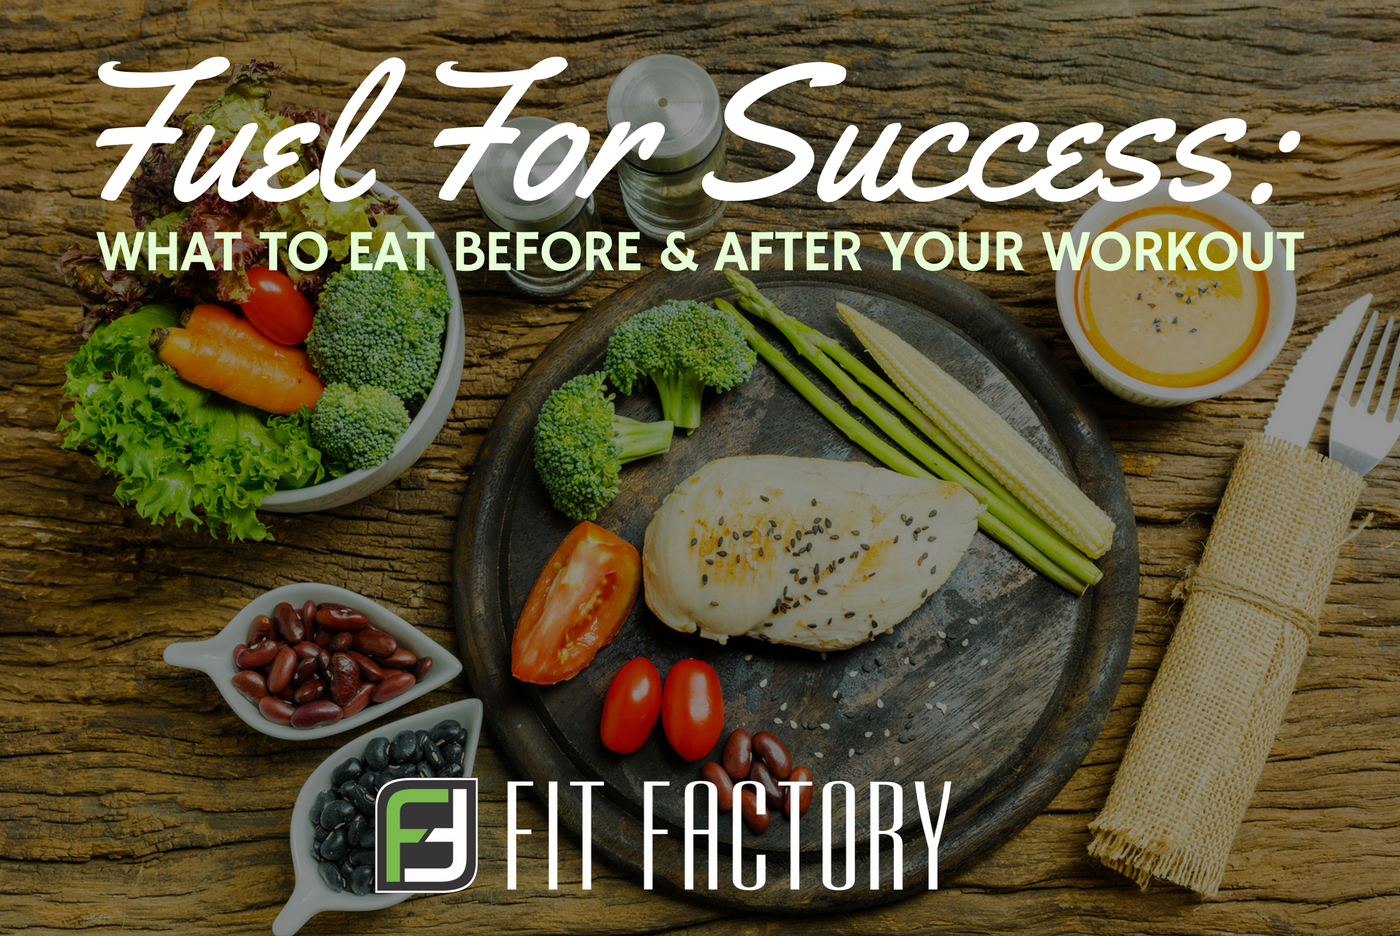 Fuel for Success: What To Eat Before and After Your Workout